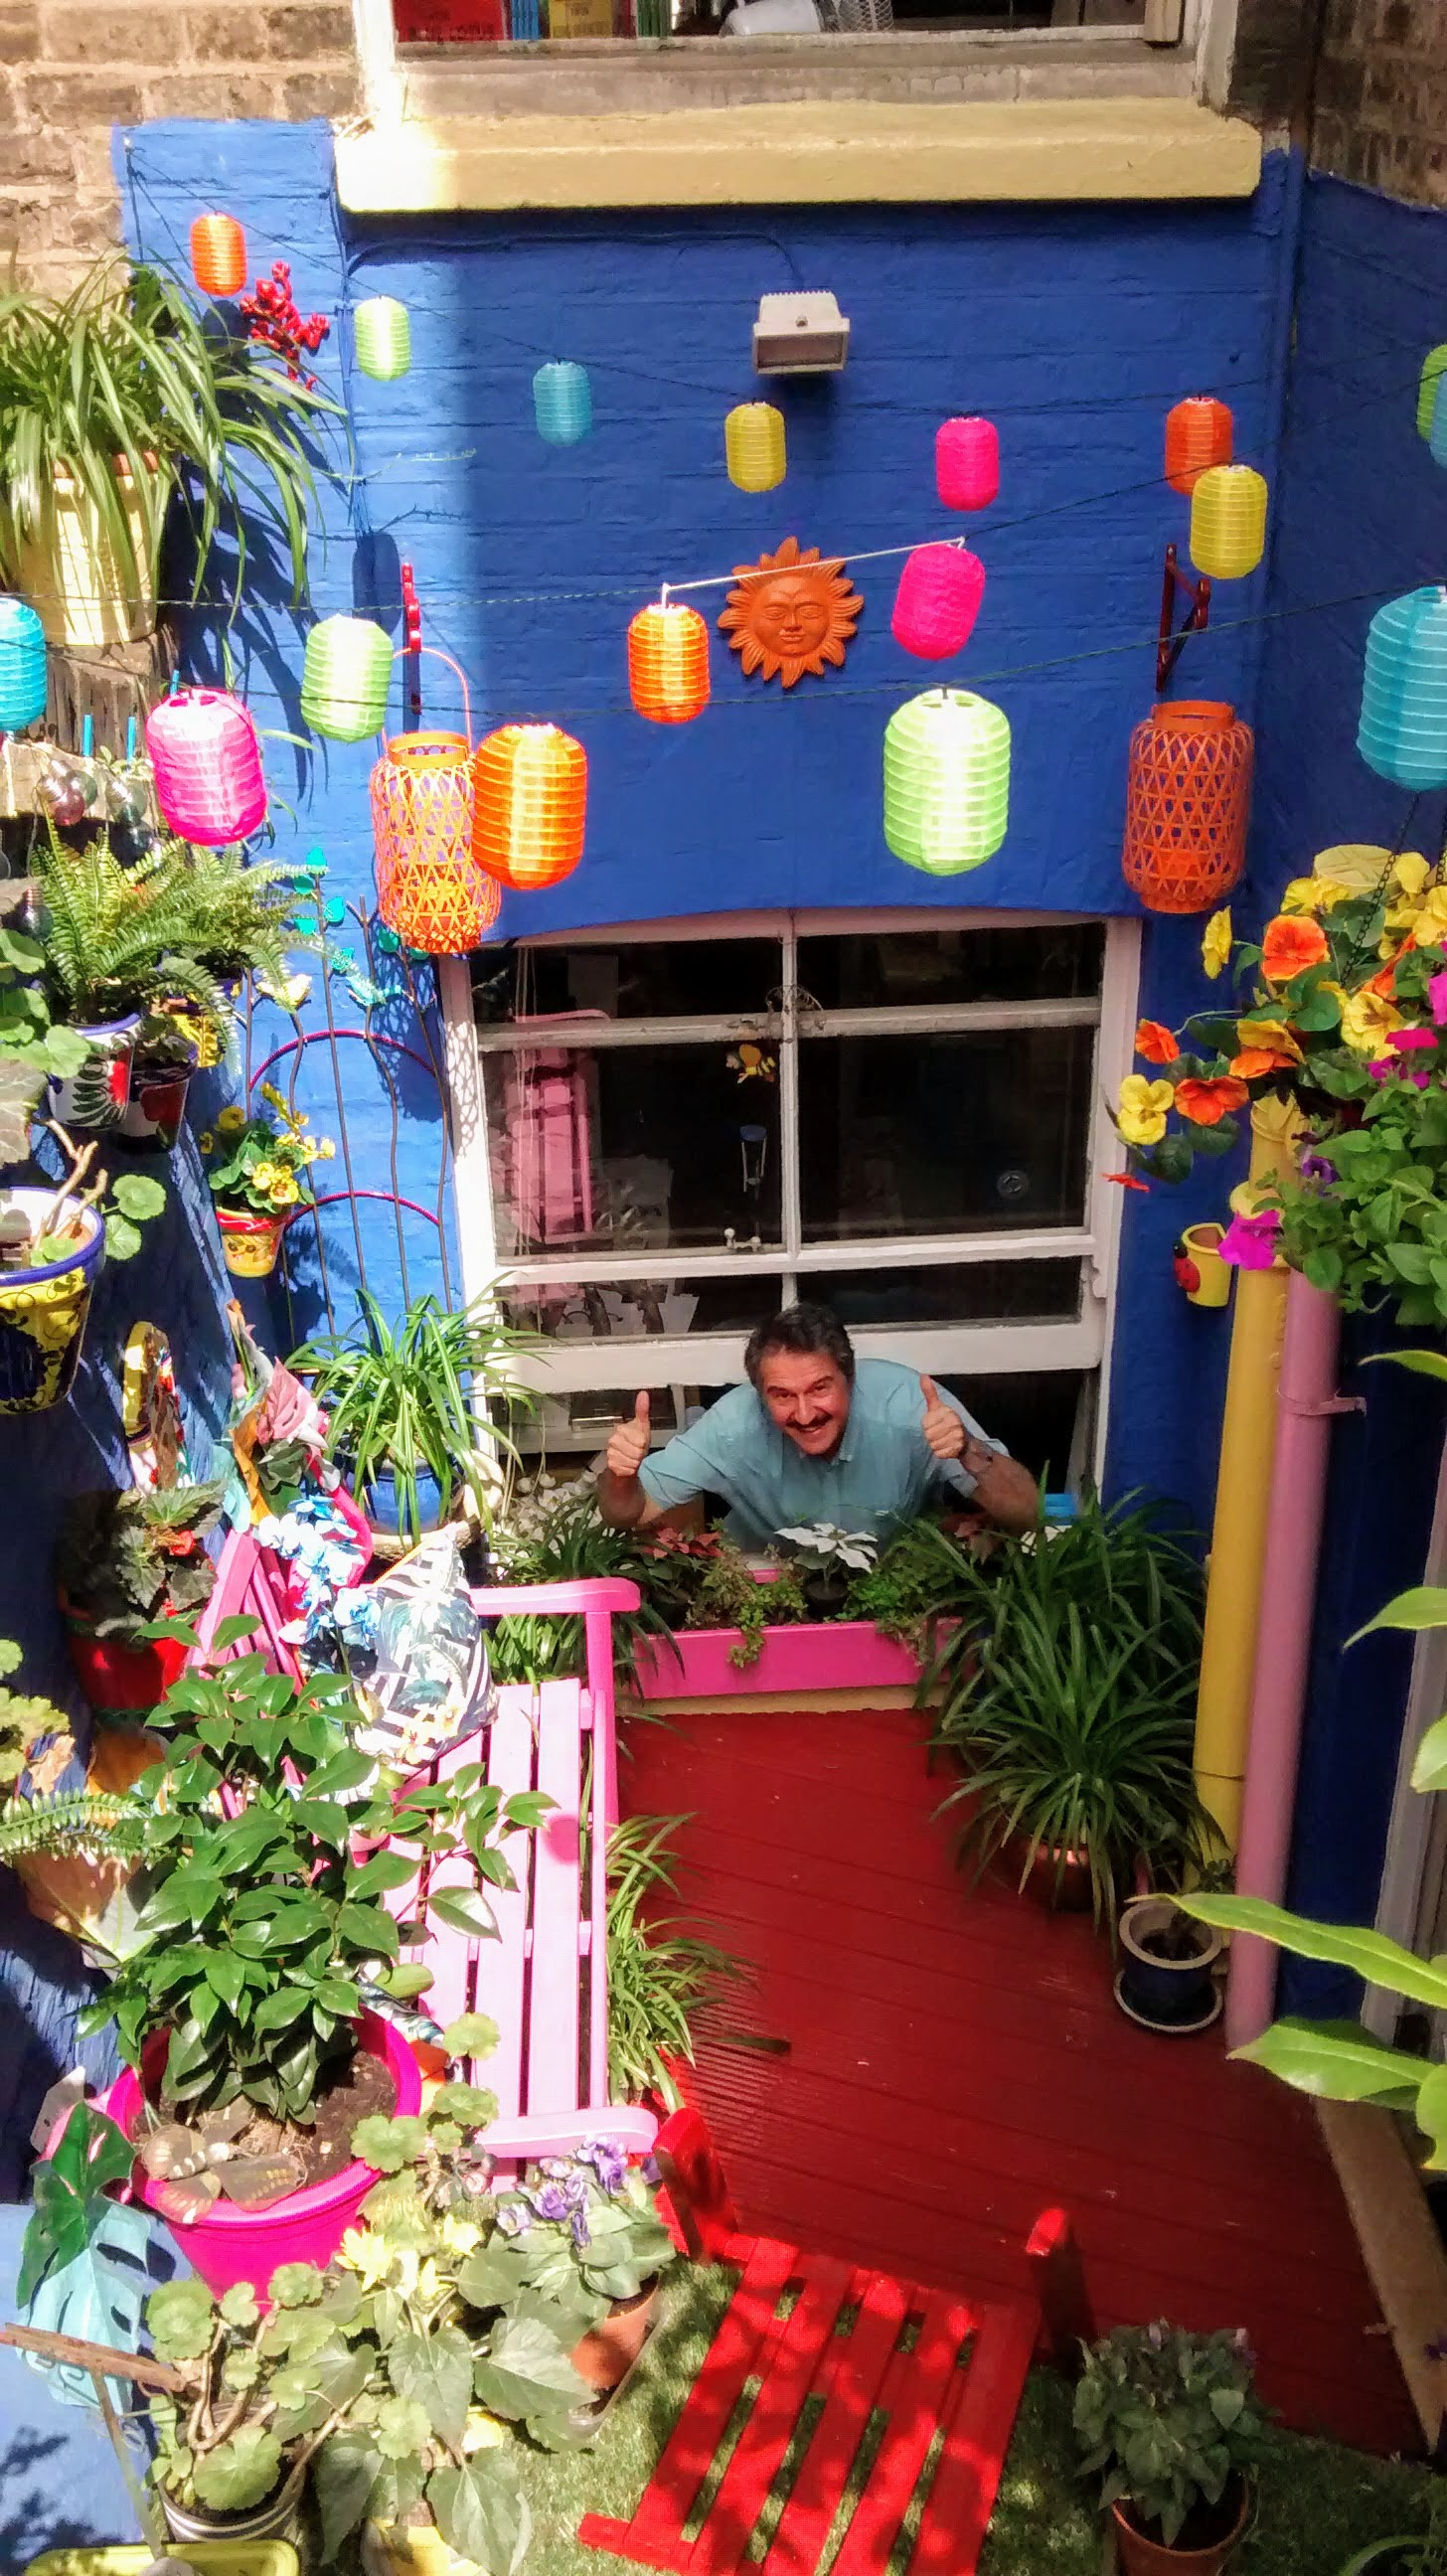 Above: Tim Reynolds, manager of the Medici Gallery, gives the thumbs up to the shop's back yard, inspired by Yves Klein's Jardin Majorelle in Marrakech.